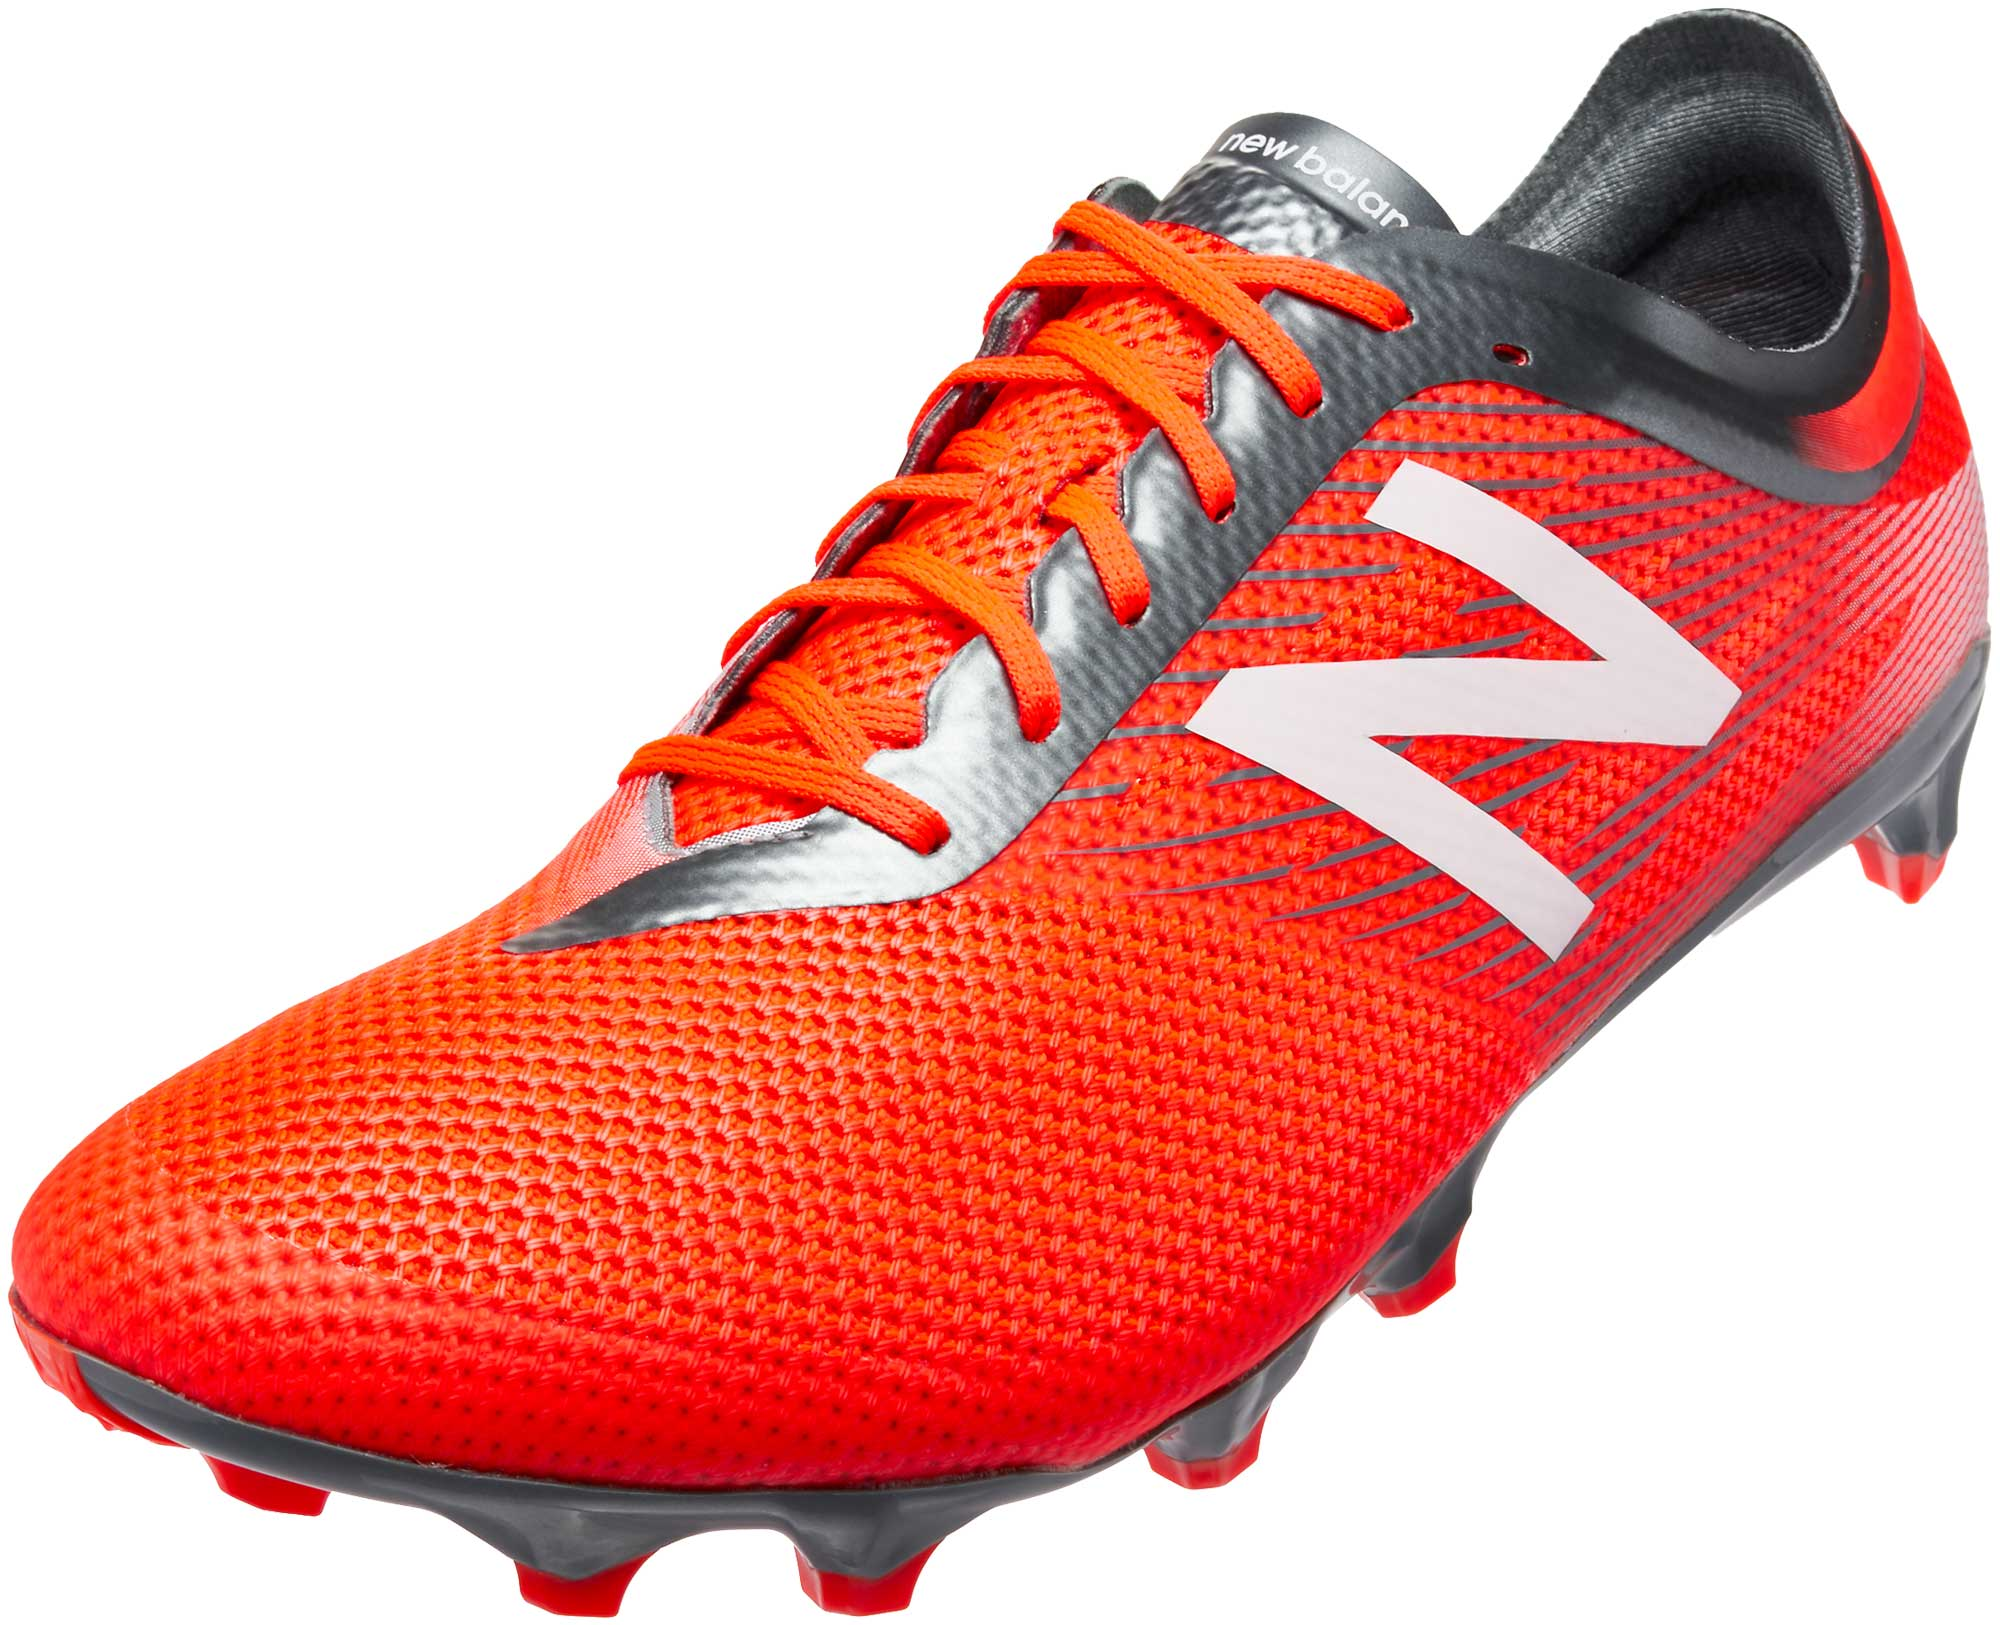 94443deec66 New Balance Furon 2.0 Pro FG- New Balance Soccer Cleats